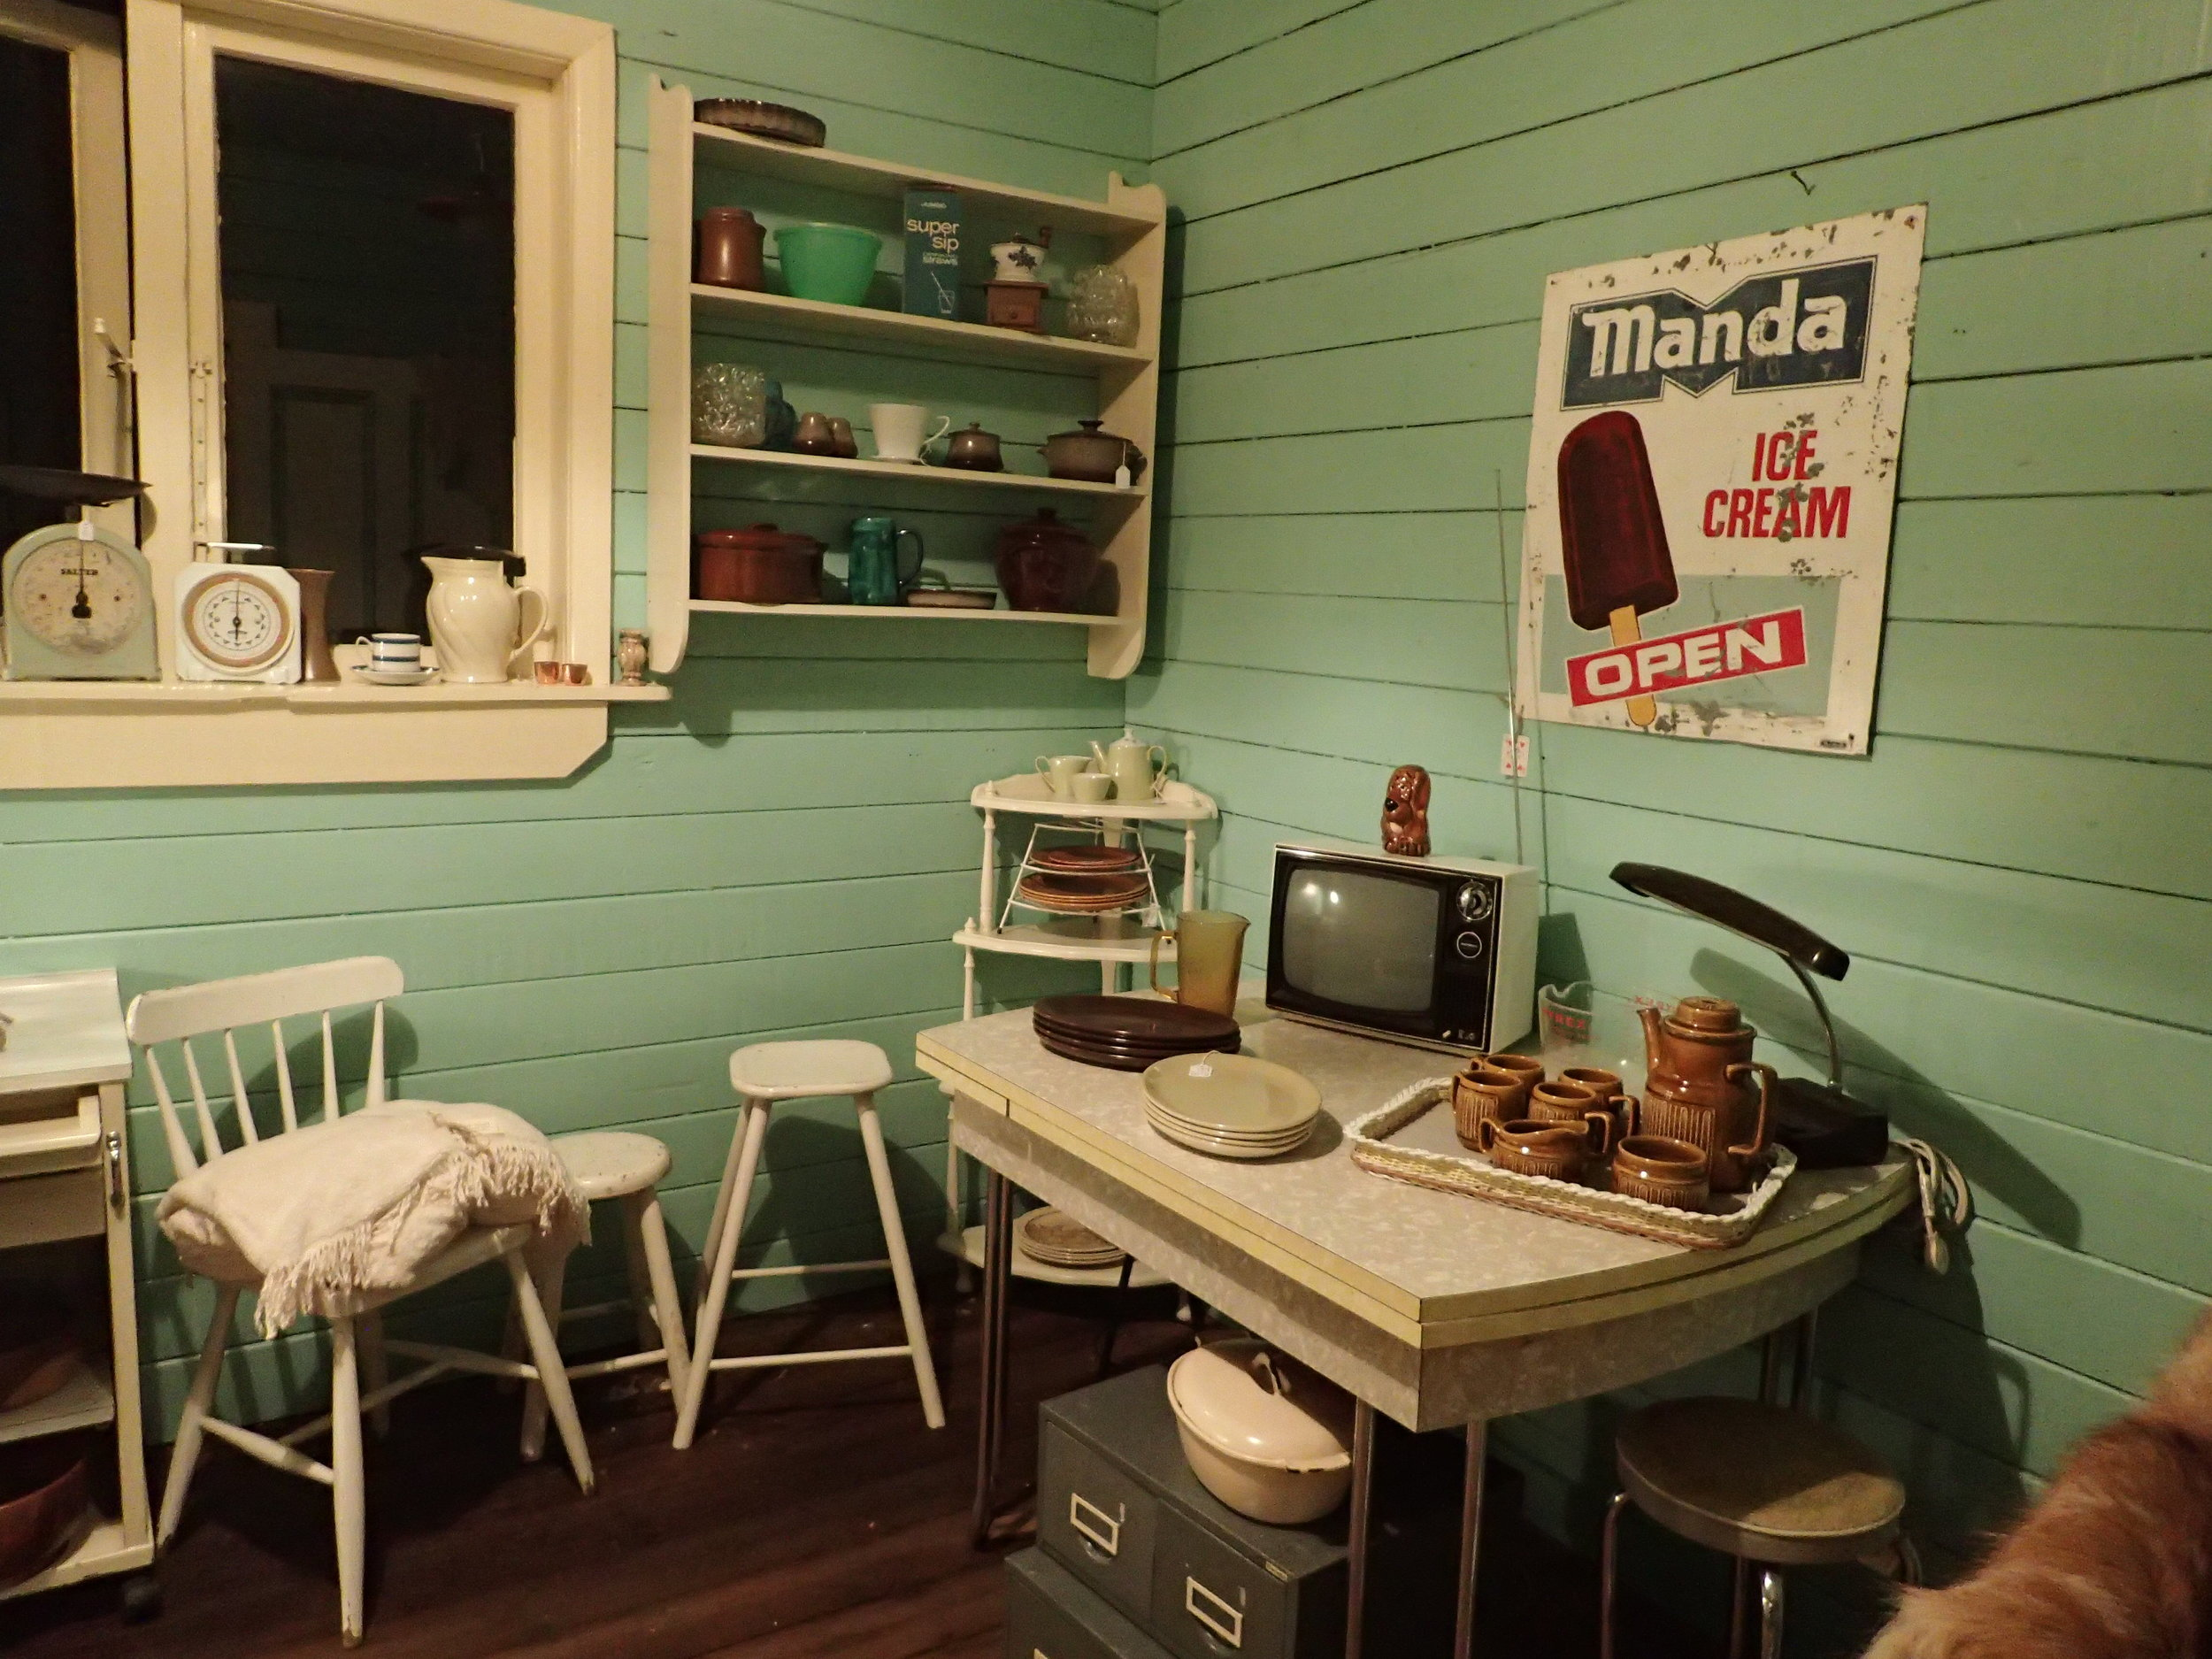 Formica and Crown Lynn, original Manda Icecream advertising sign and kitchenalia  like the vintage scales and antique Temuka ceramic but electric(!) jug from the early 1900.